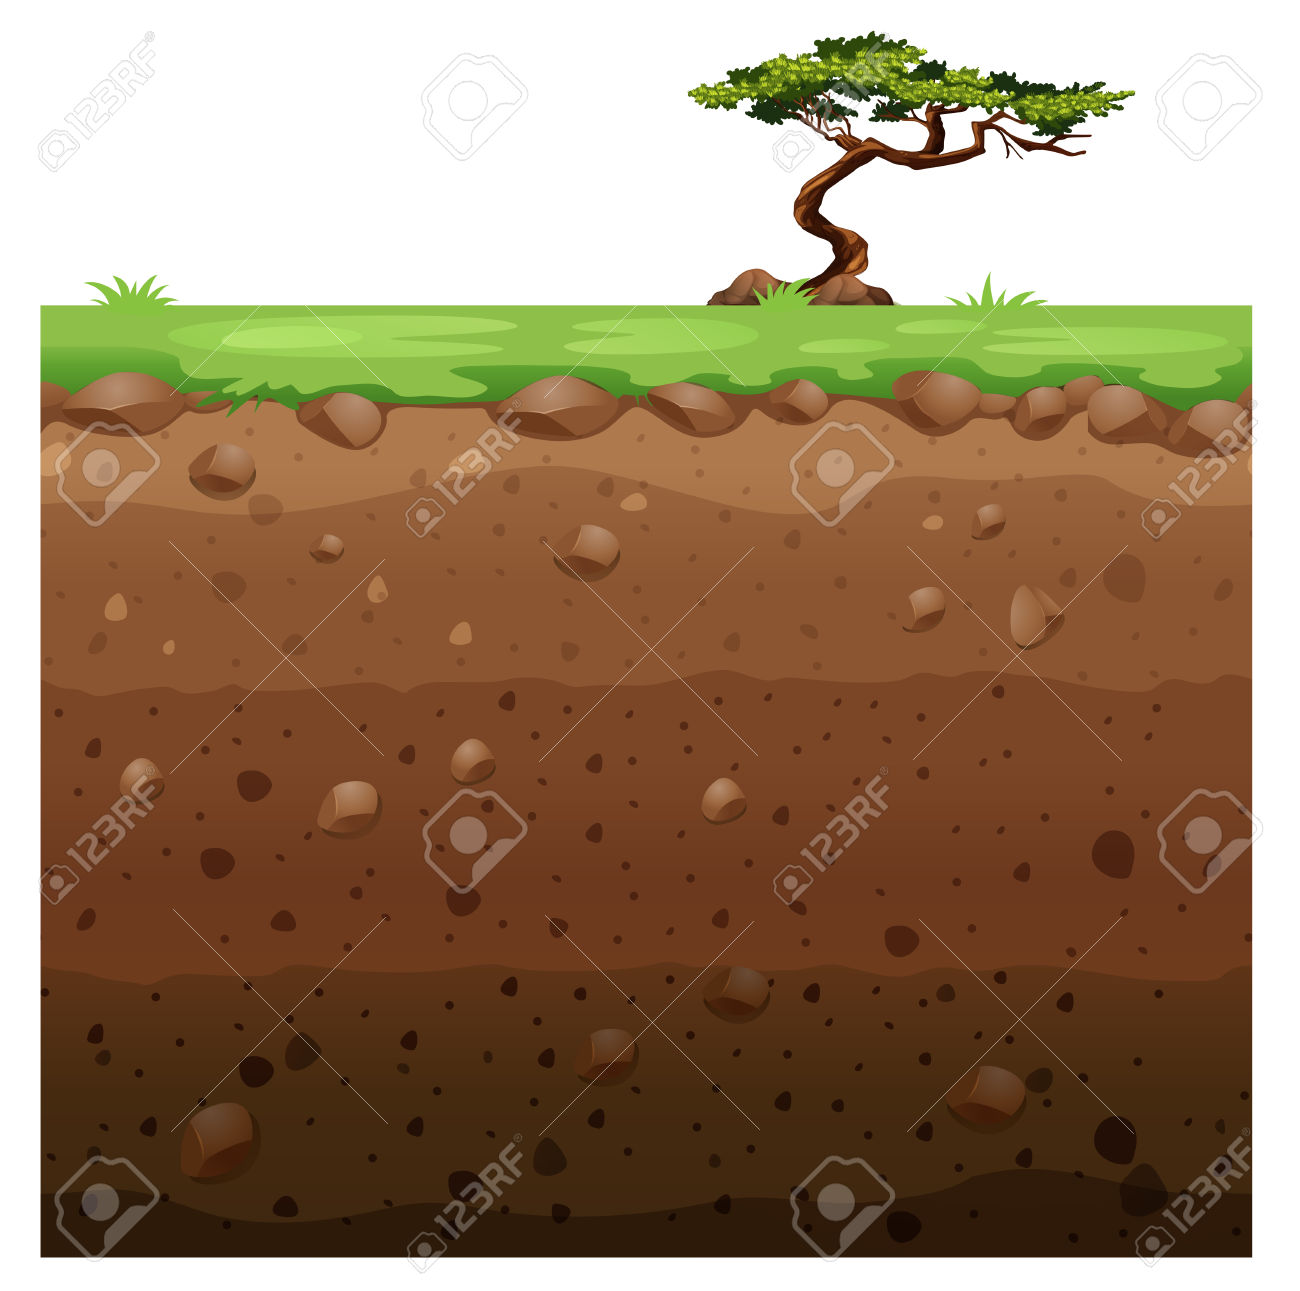 Single Tree On Surface And Underground Scene Illustration Royalty.